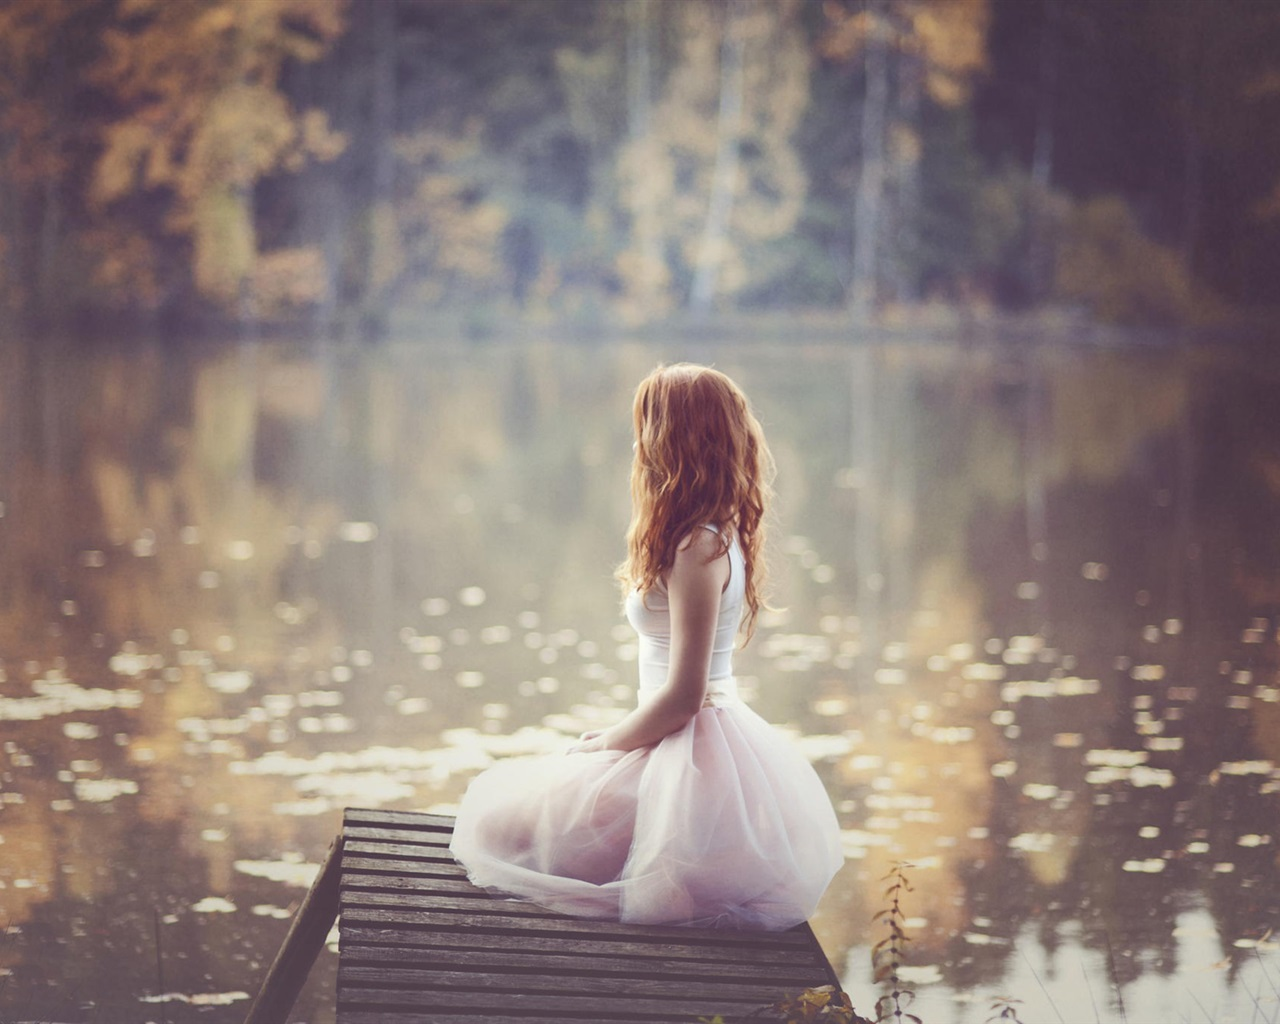 Lonely girl white dress lakeside 640x1136 iphone 5 5s 5c se wallpaper background picture image